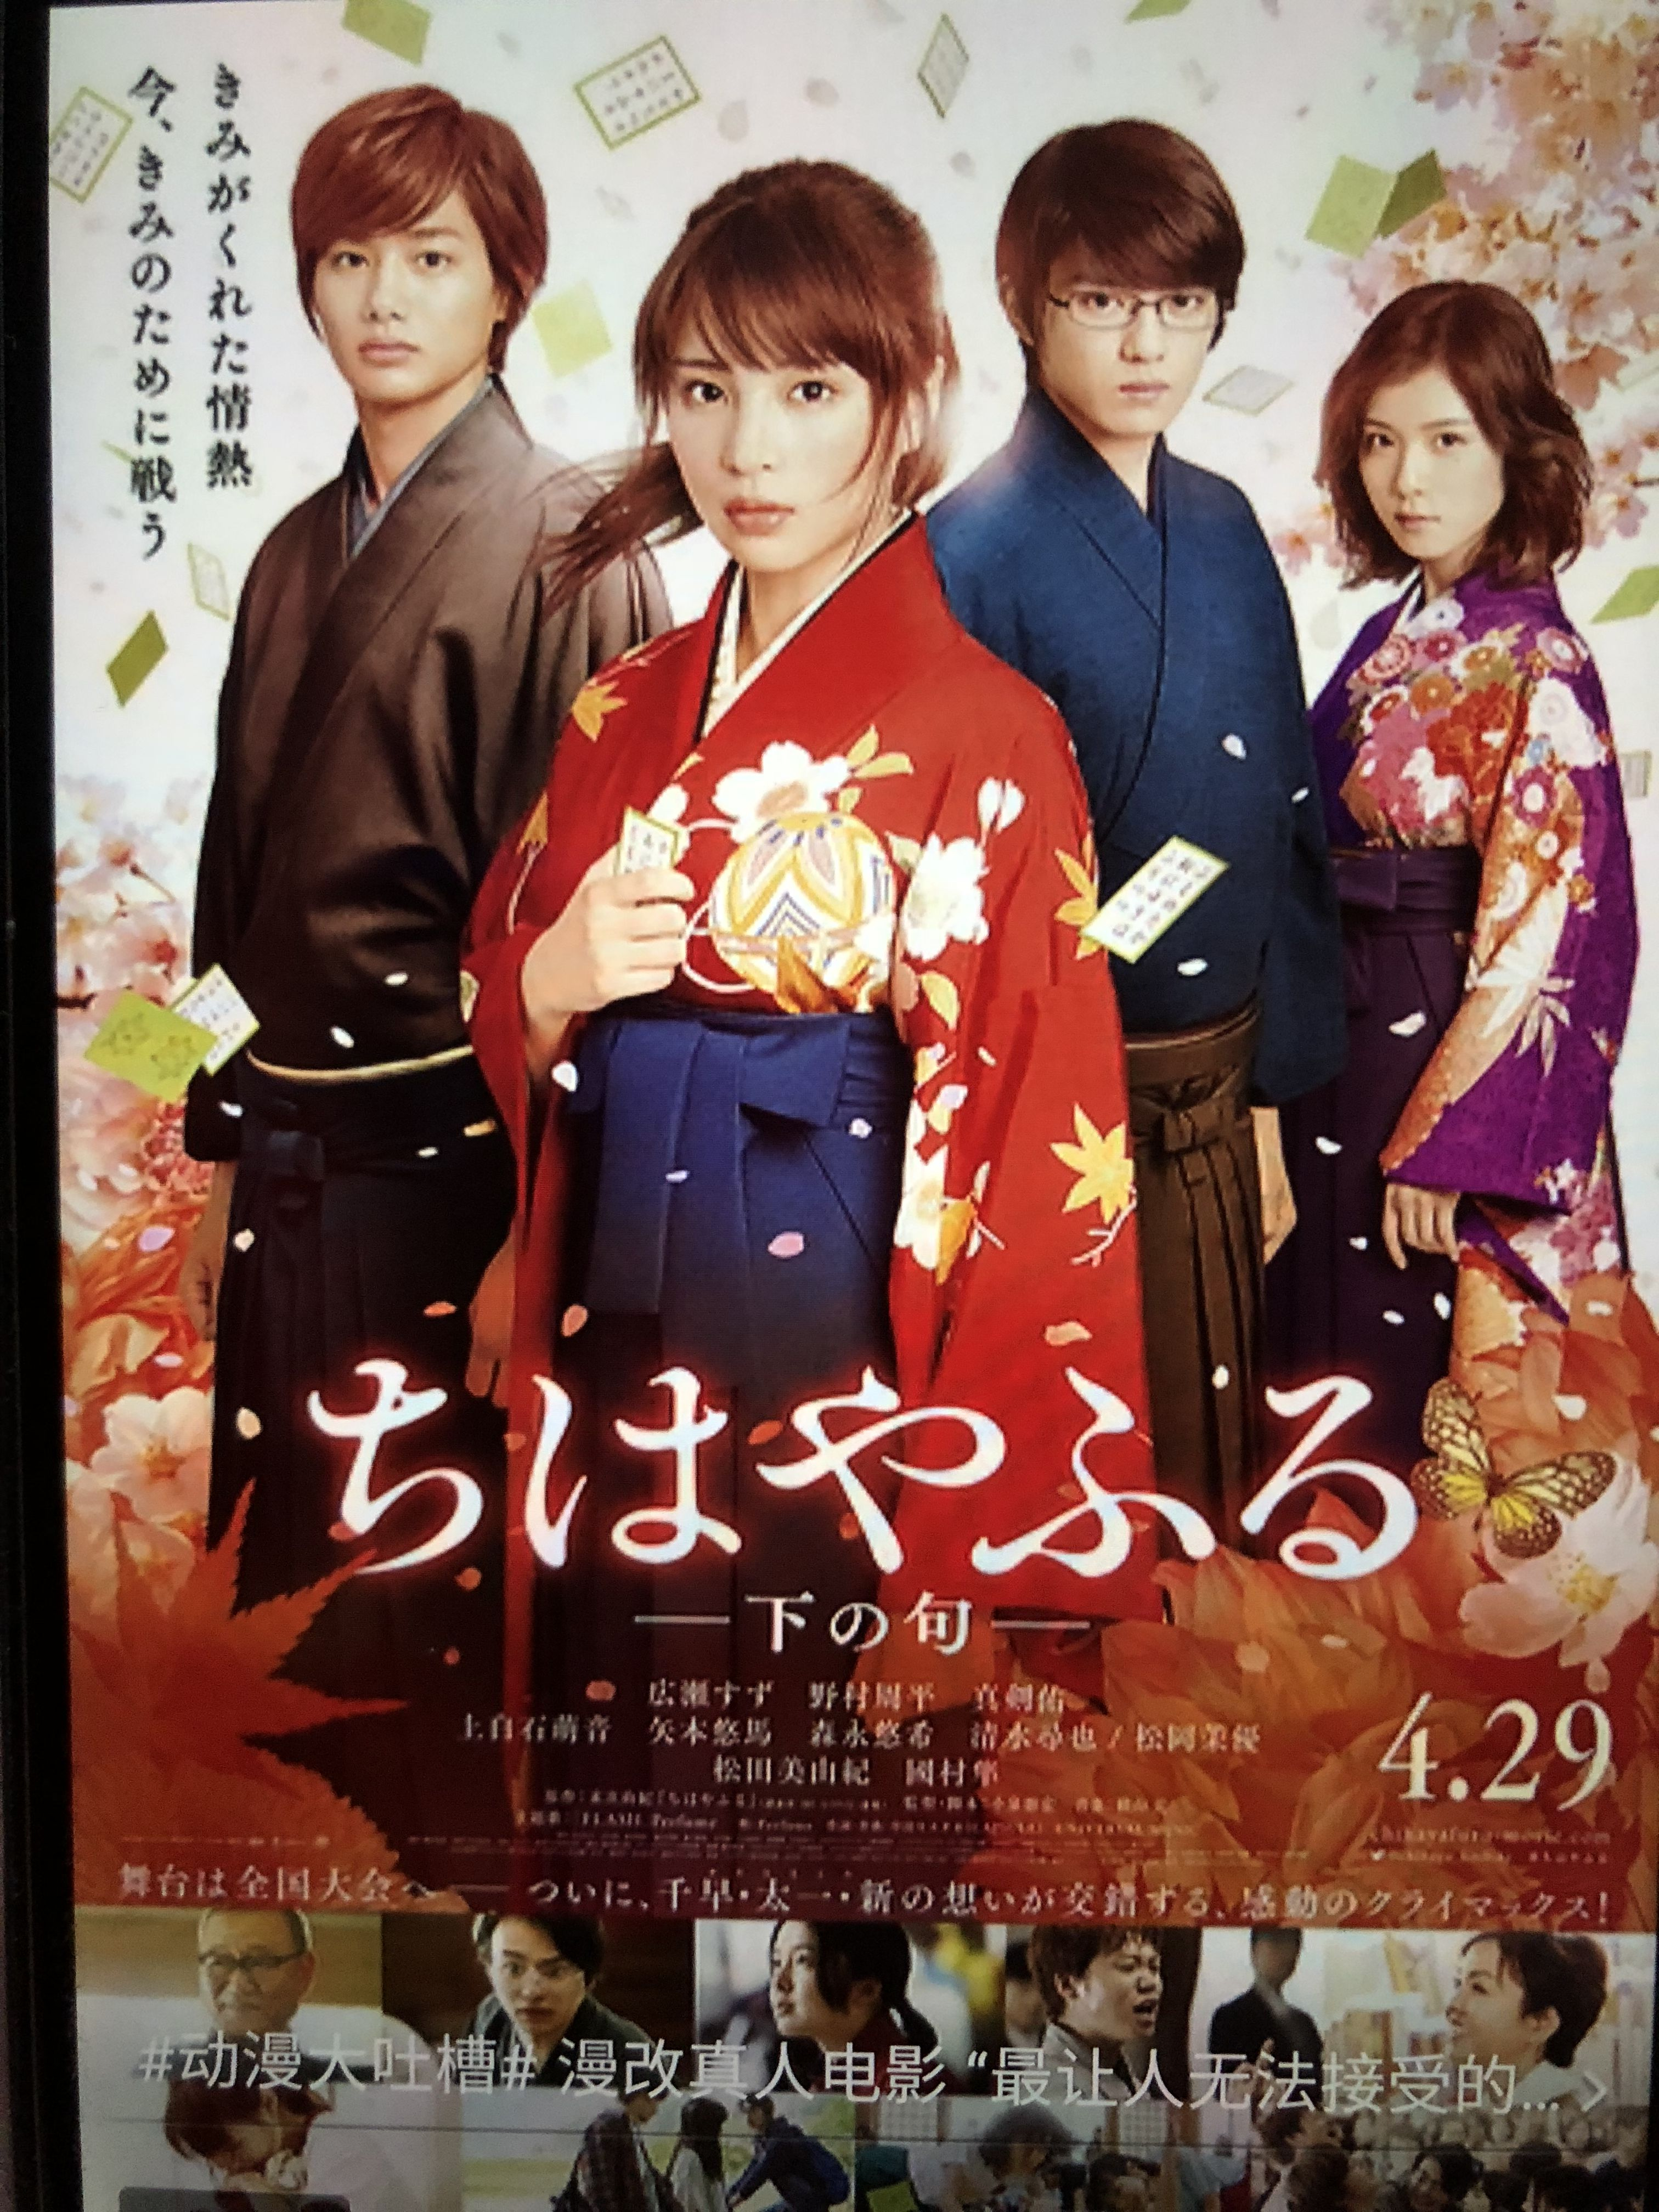 Pin by Oi Ling Wong on I劇(日) Japanese movies, Live